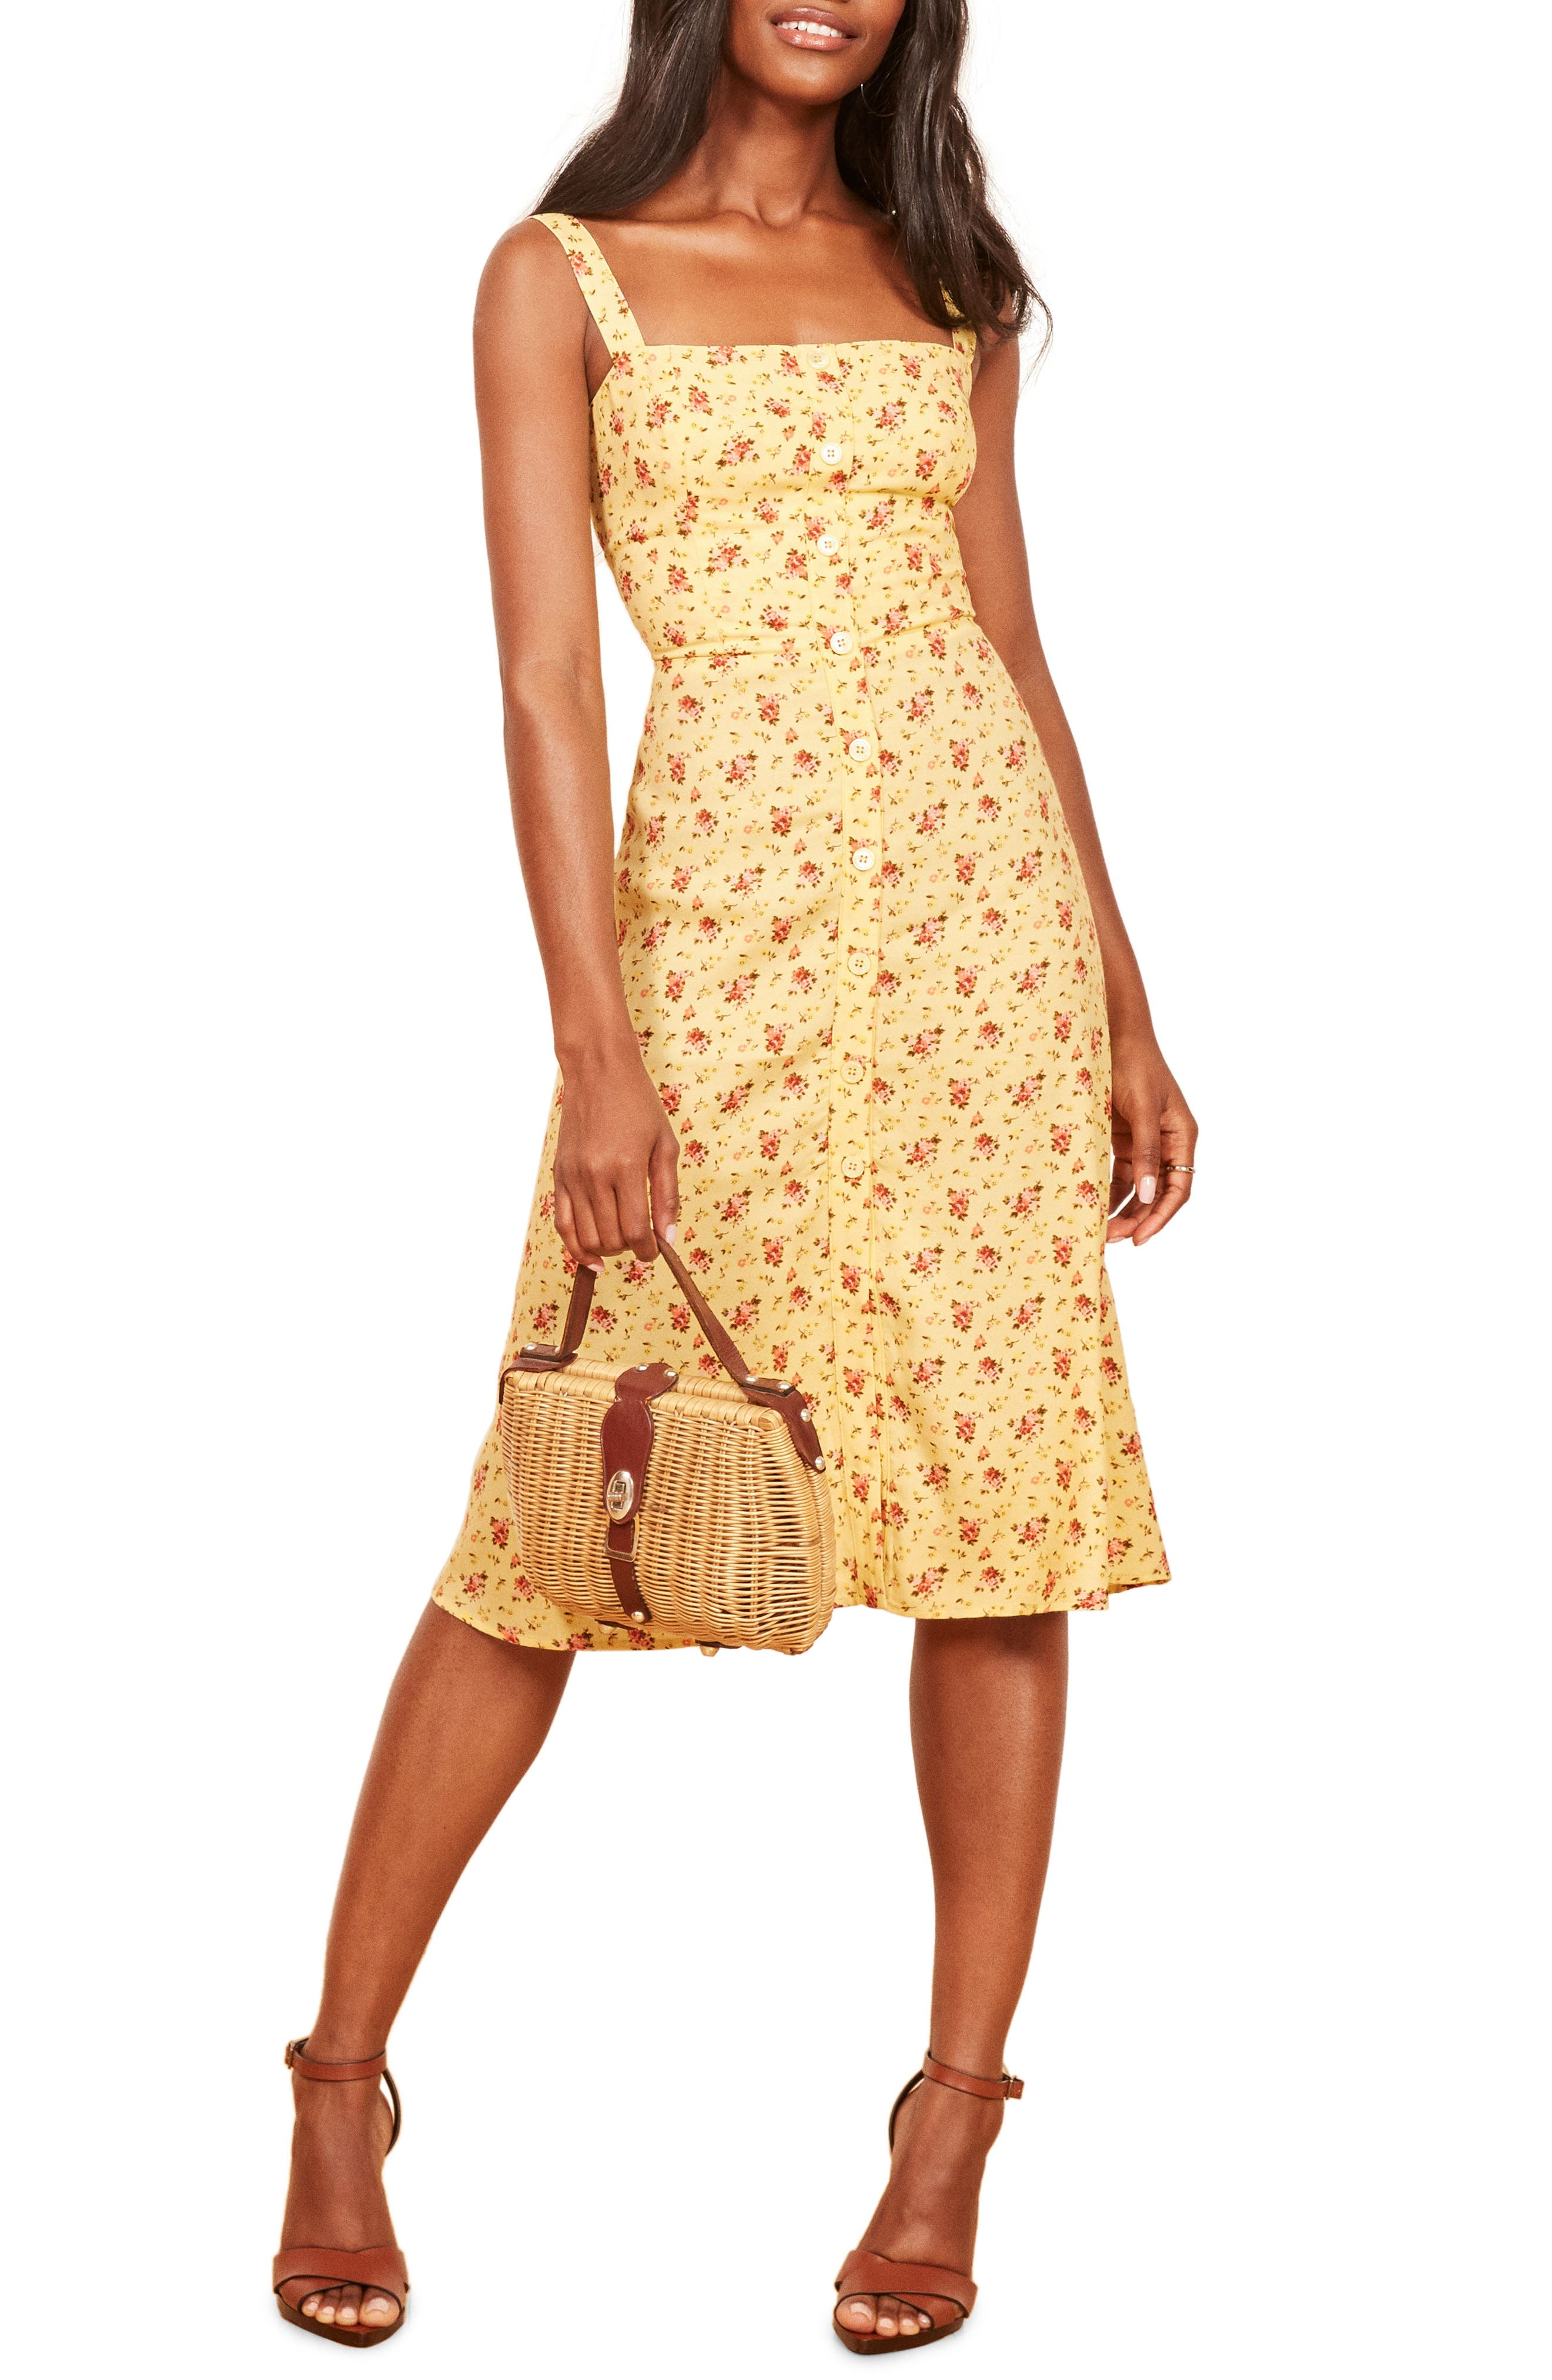 Persimmon Floral Midi A Line Dress by Reformation